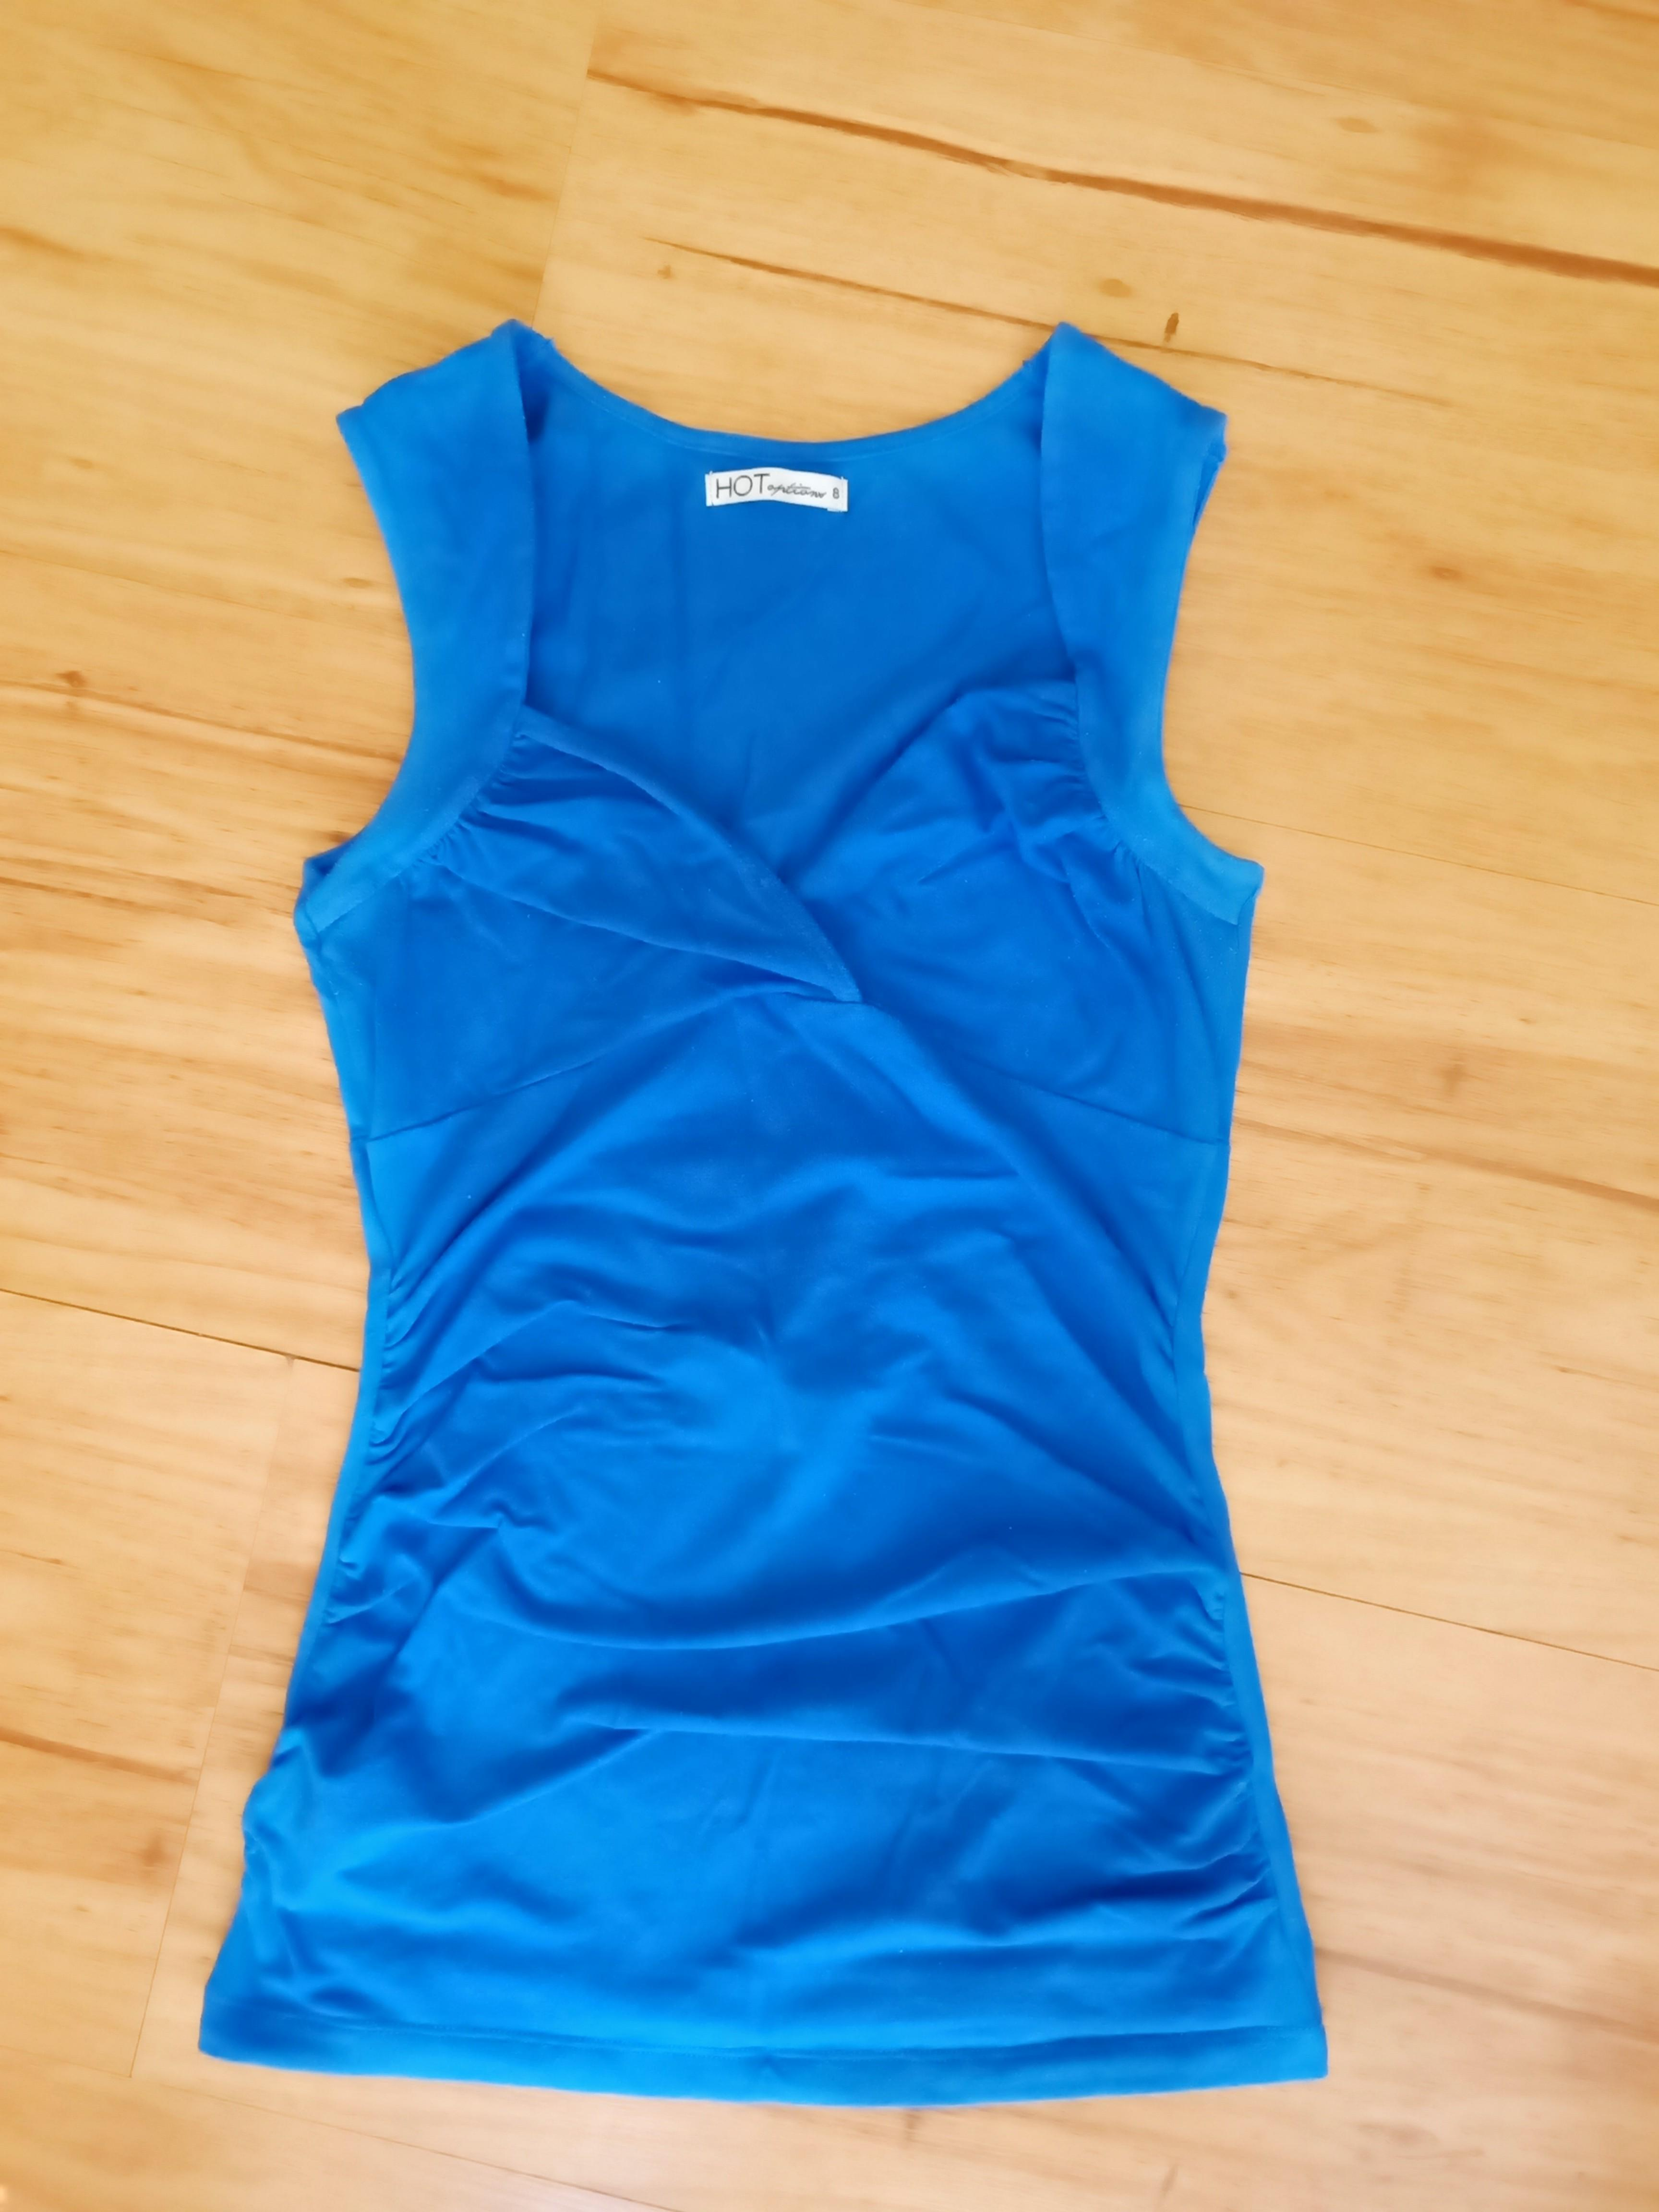 Blue Sweetheart Crossover Sleeveless Top - Size 8 Ruched Front